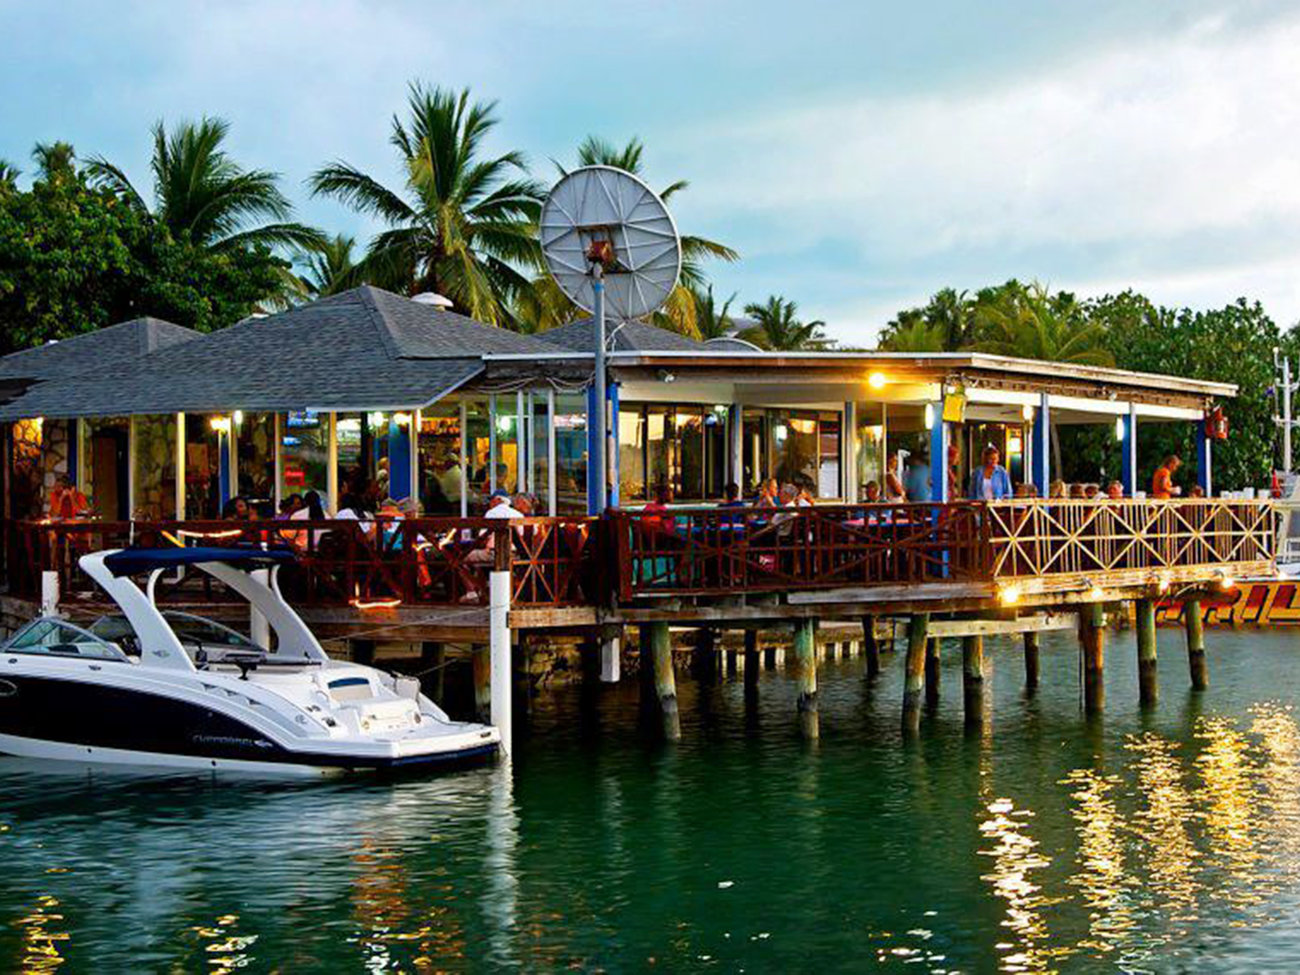 Sharkbite Bar in Turks and Caicos